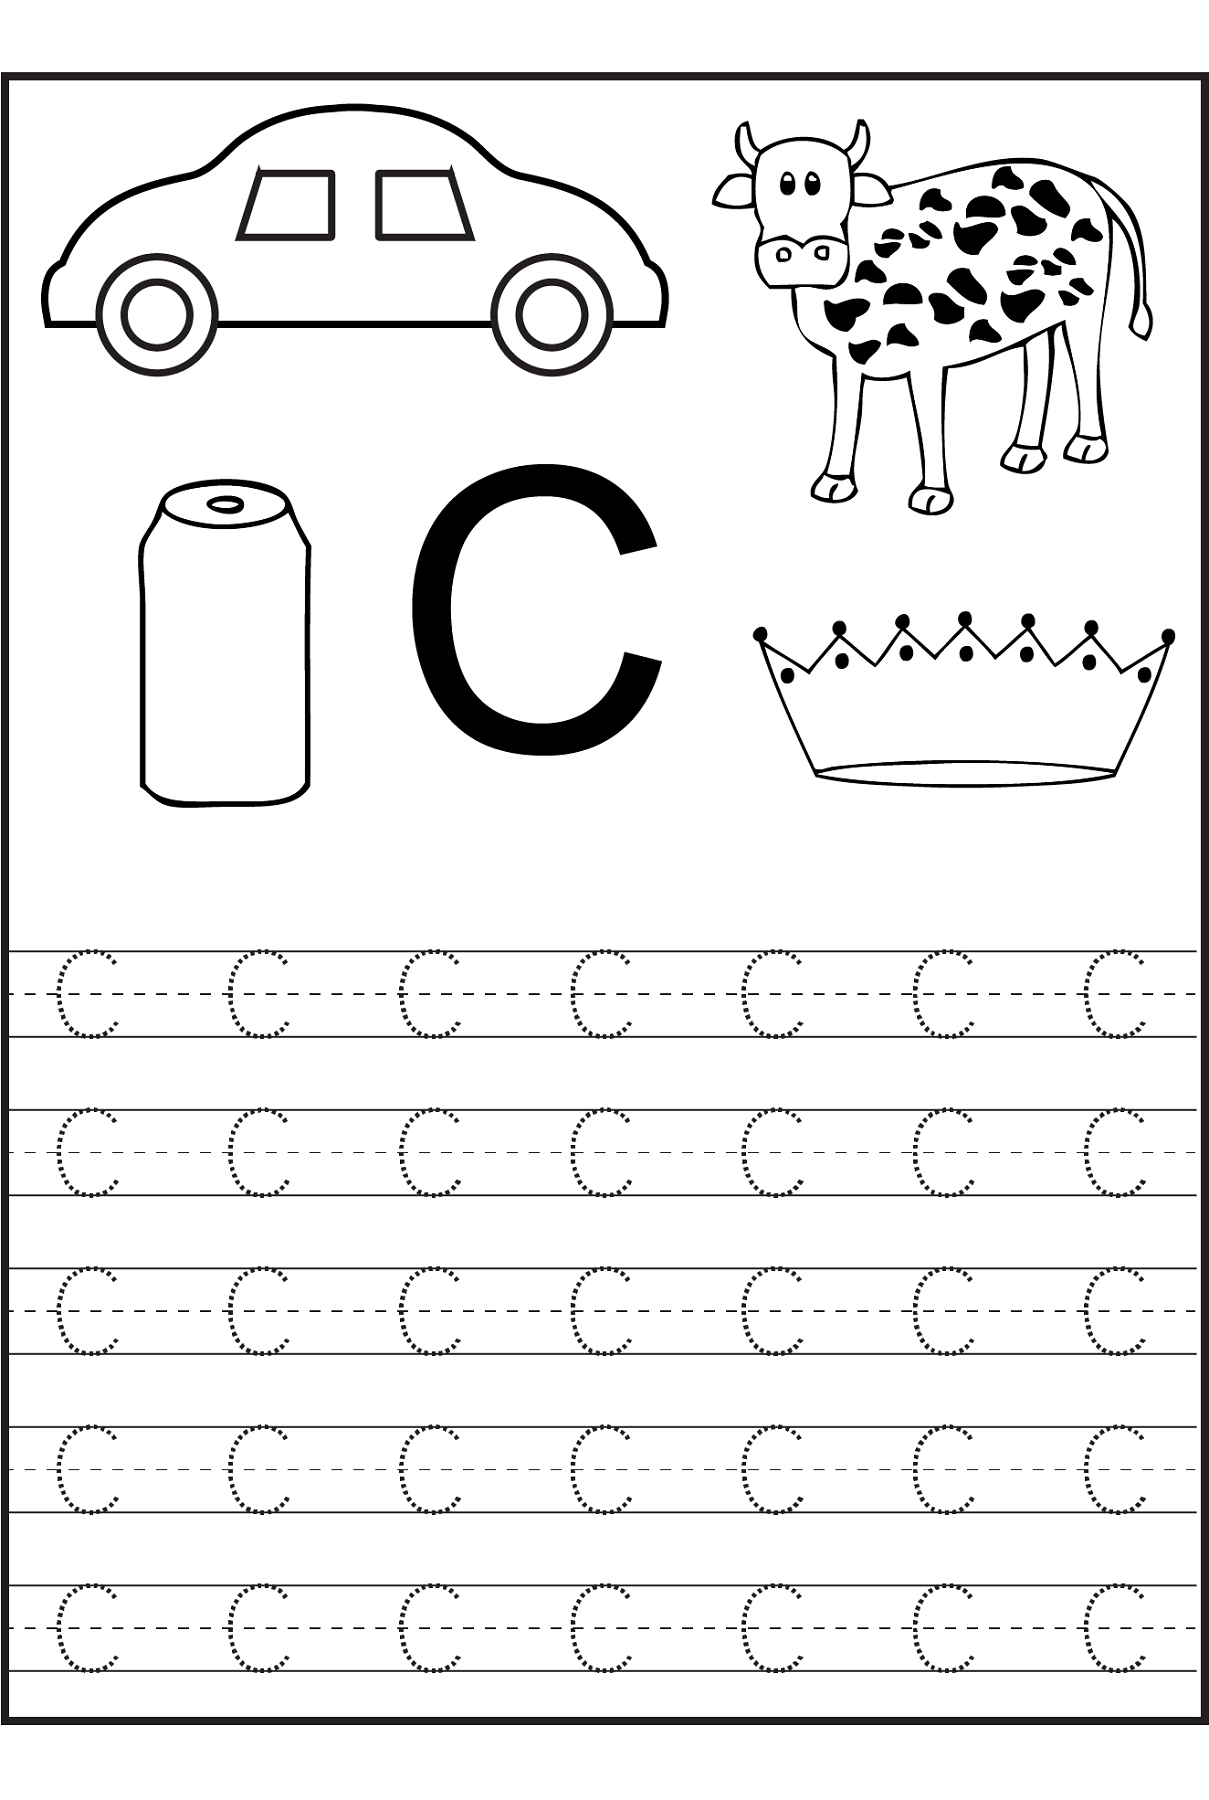 Trace The Letter C Worksheets | Learning Worksheets in Letter C Tracing Page